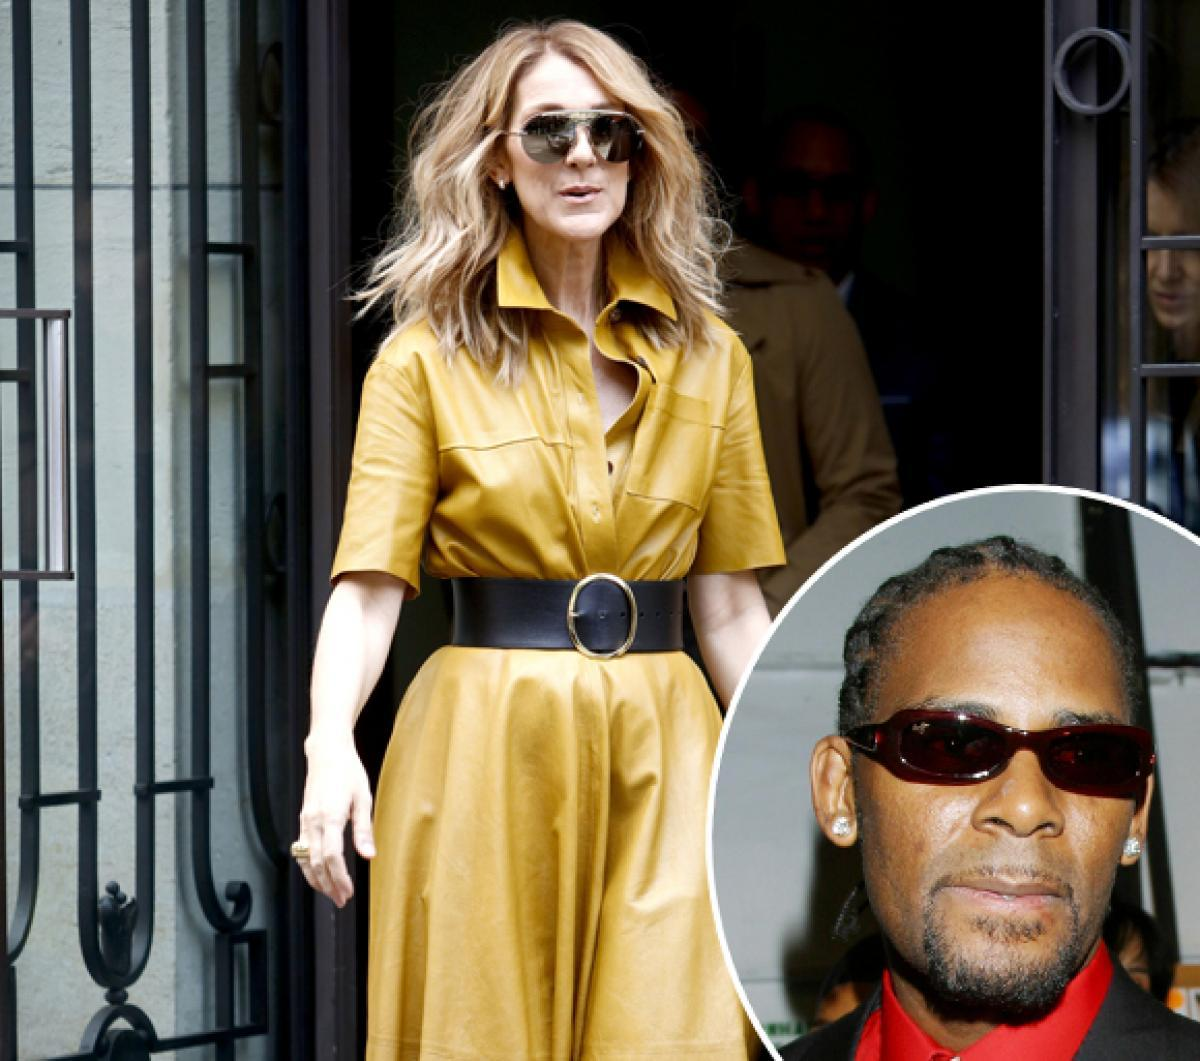 Celine Dion pulls down song with R. Kelly